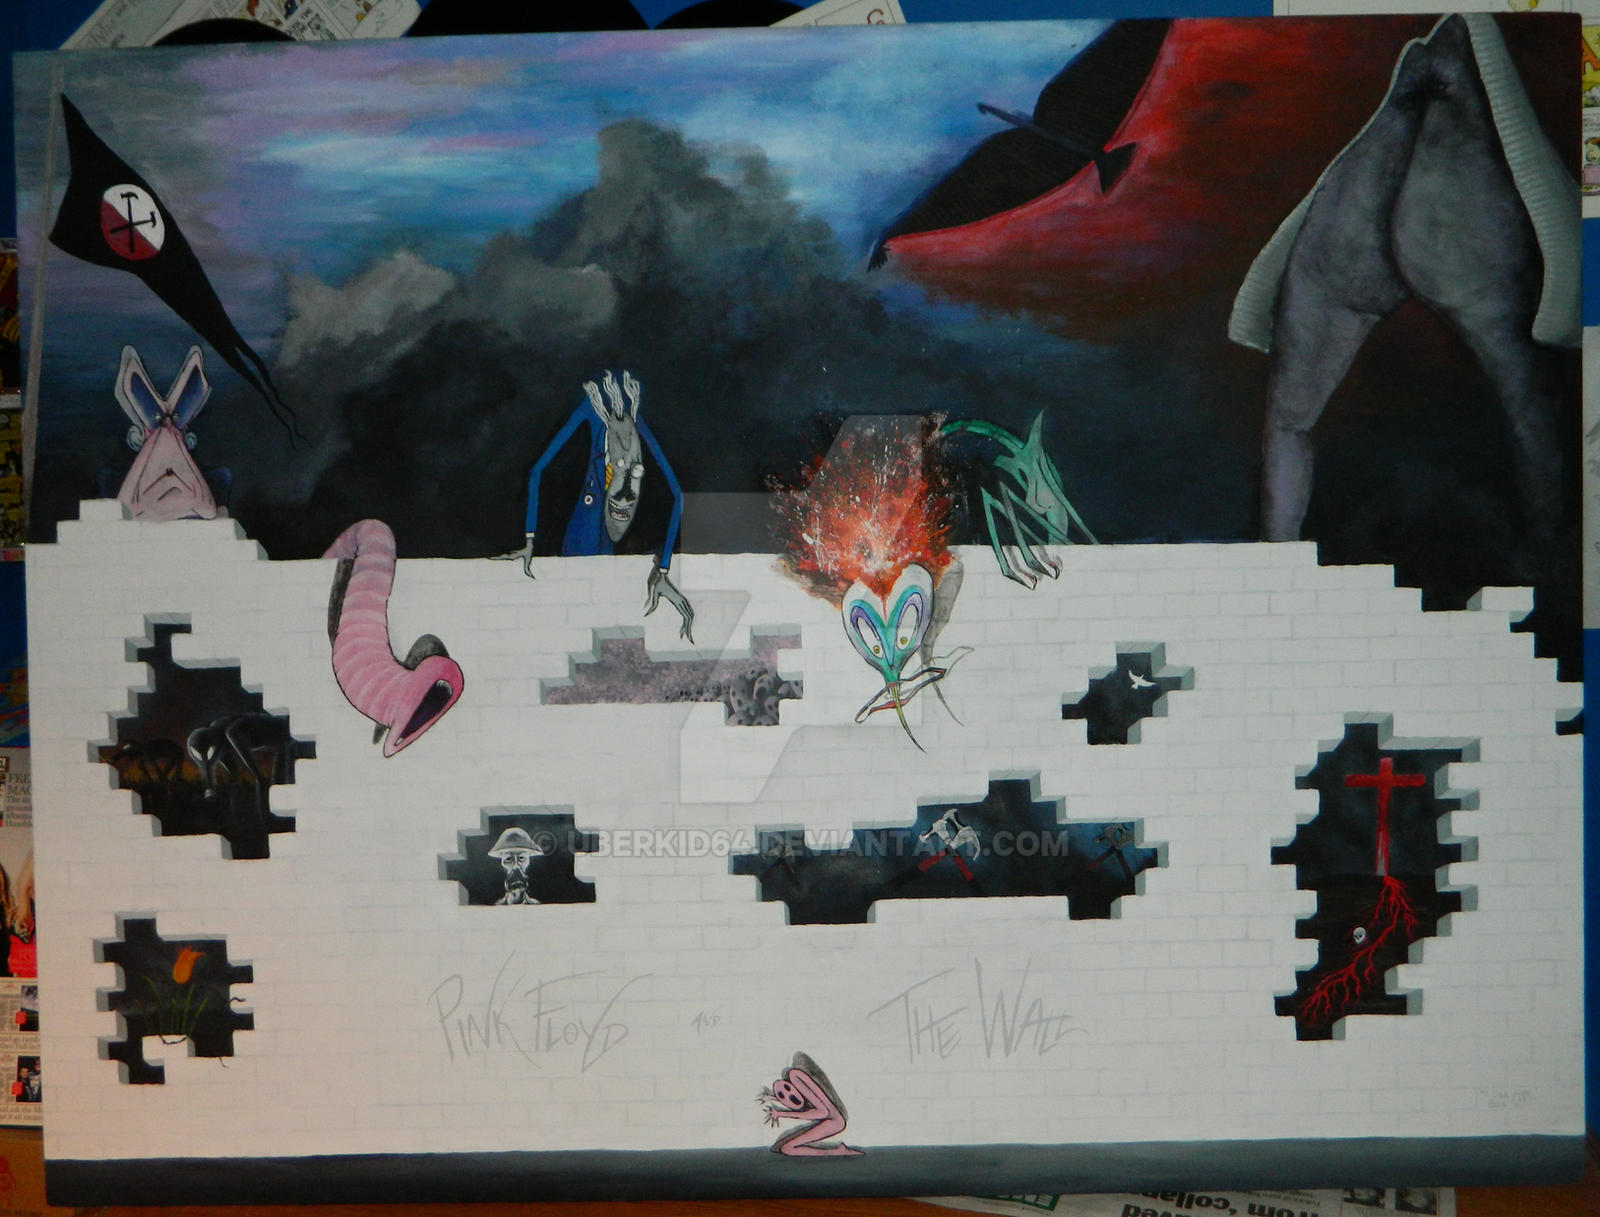 Pink Floyd The Wall Version 2 Finished By Uberkid64